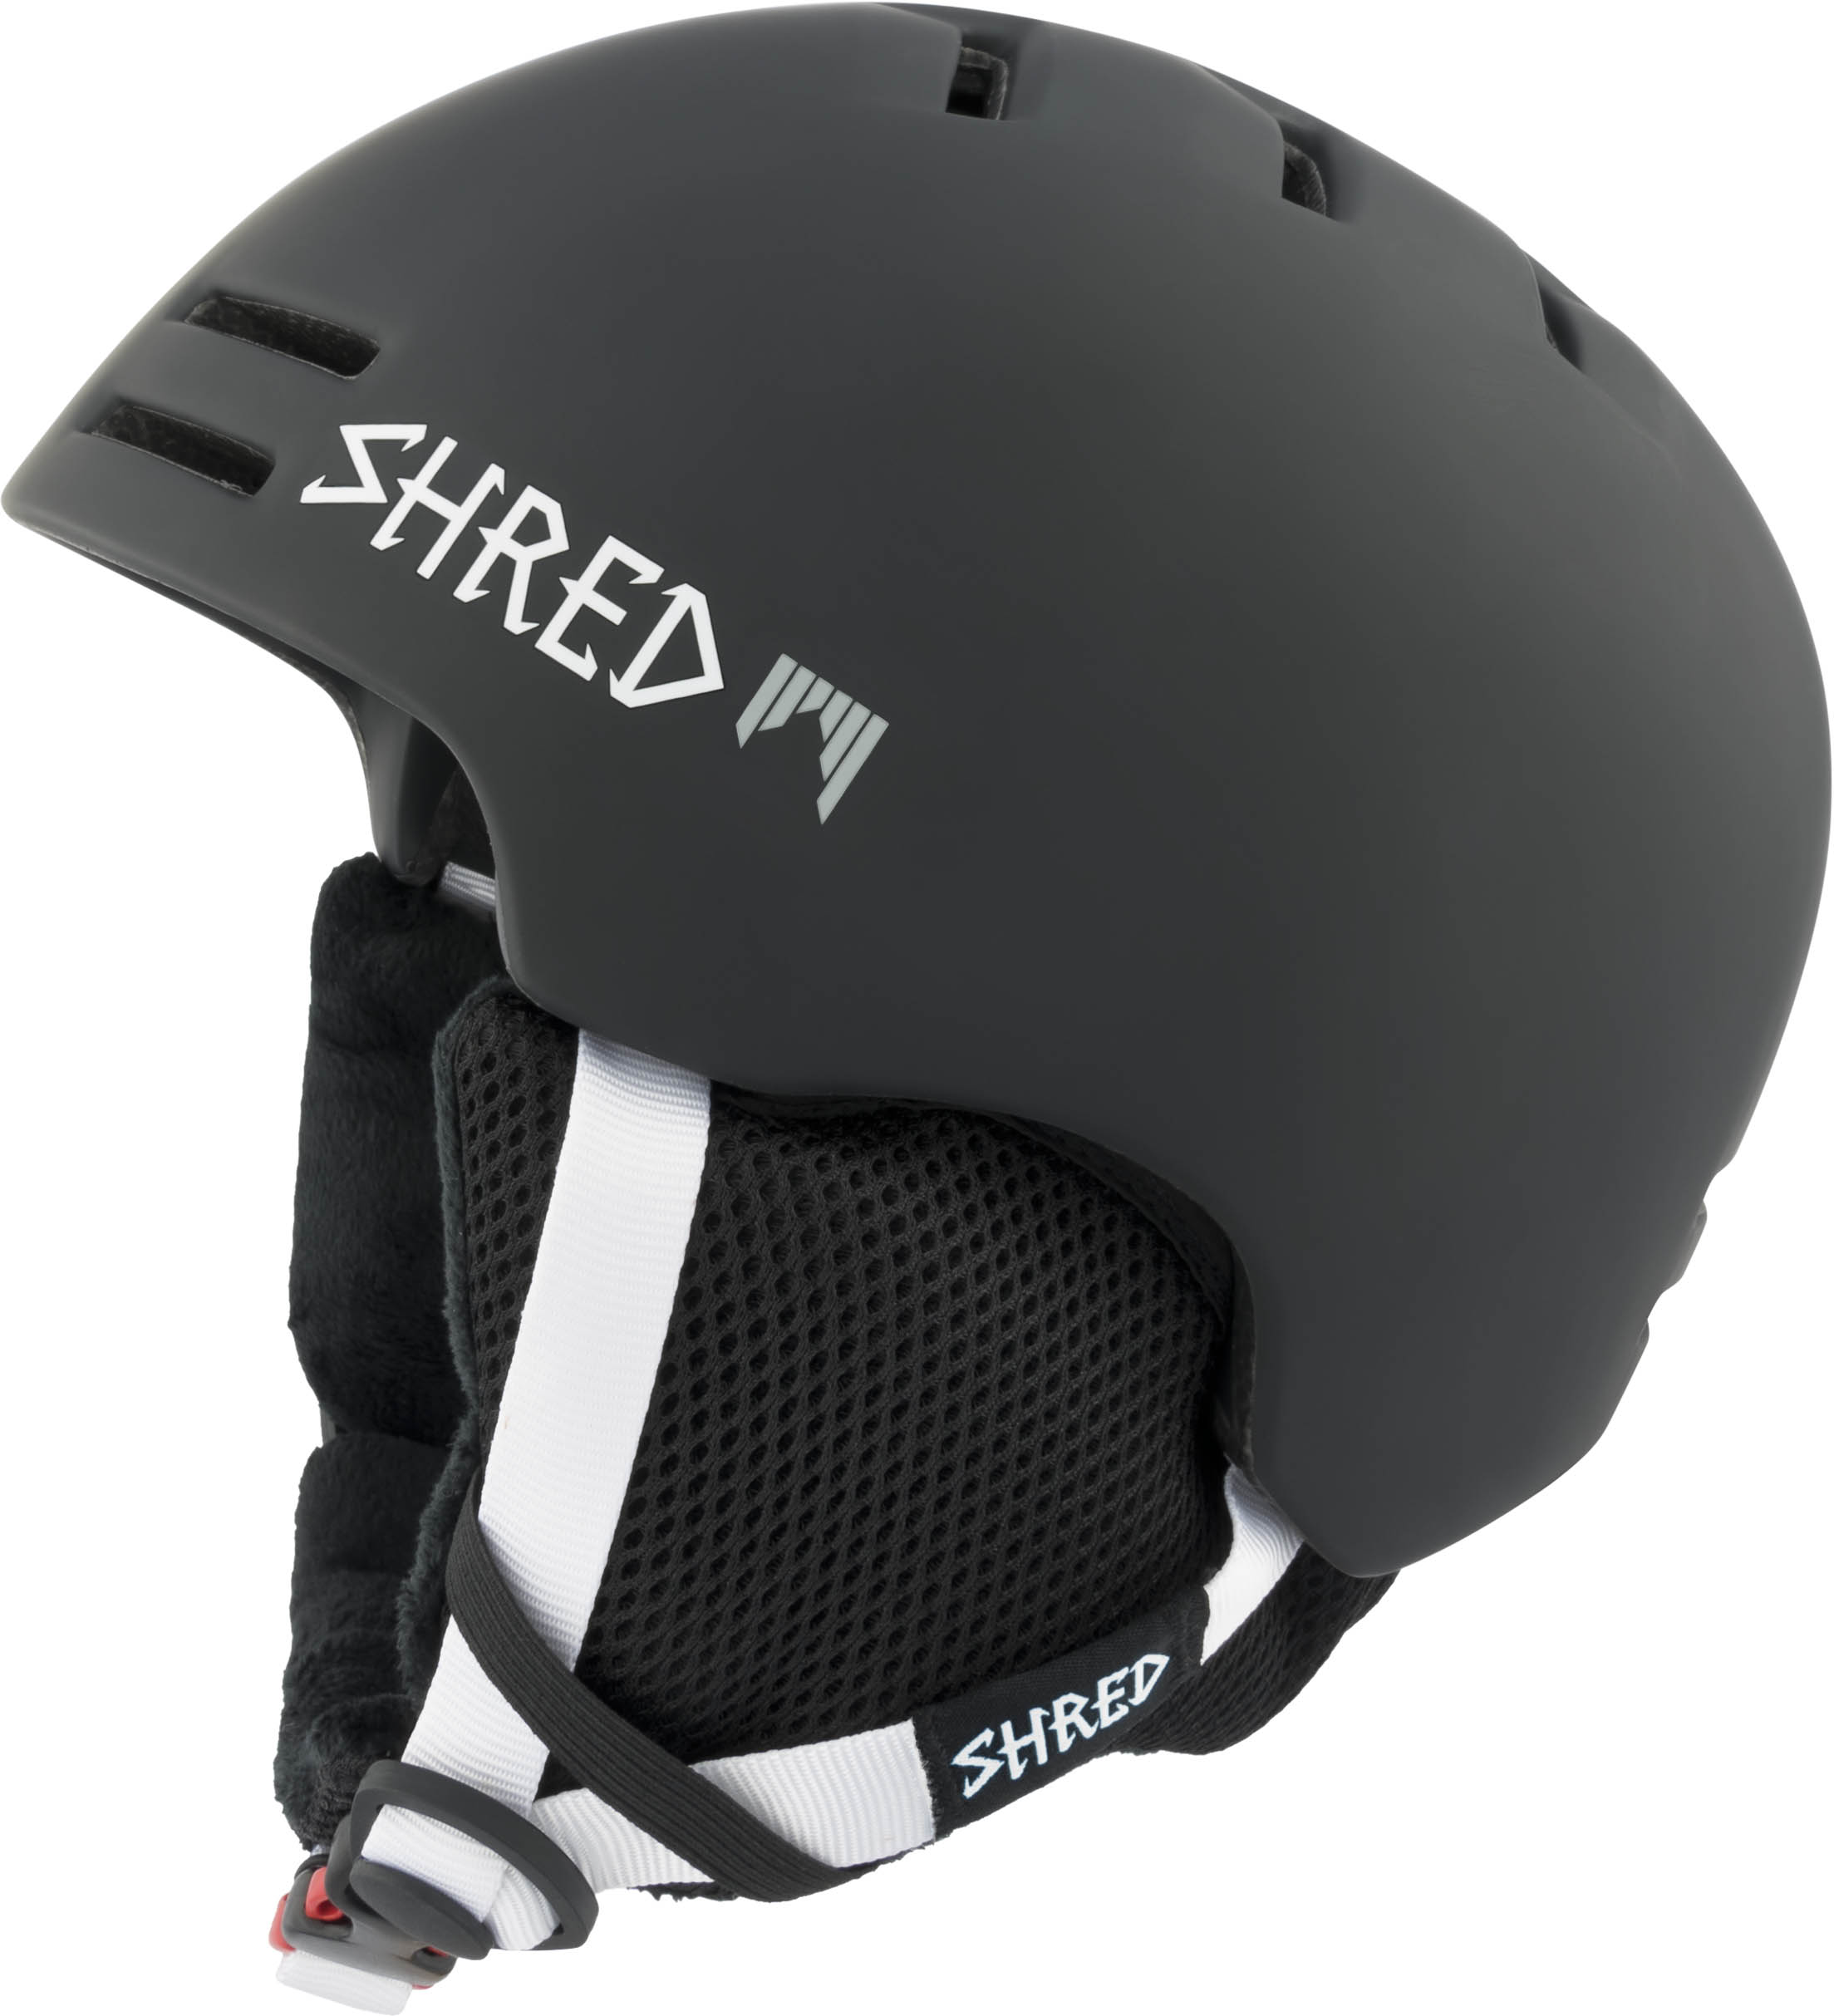 87552dbd5ea Shred incorporates its Rotational Energy System into both its snow and bike  helmets